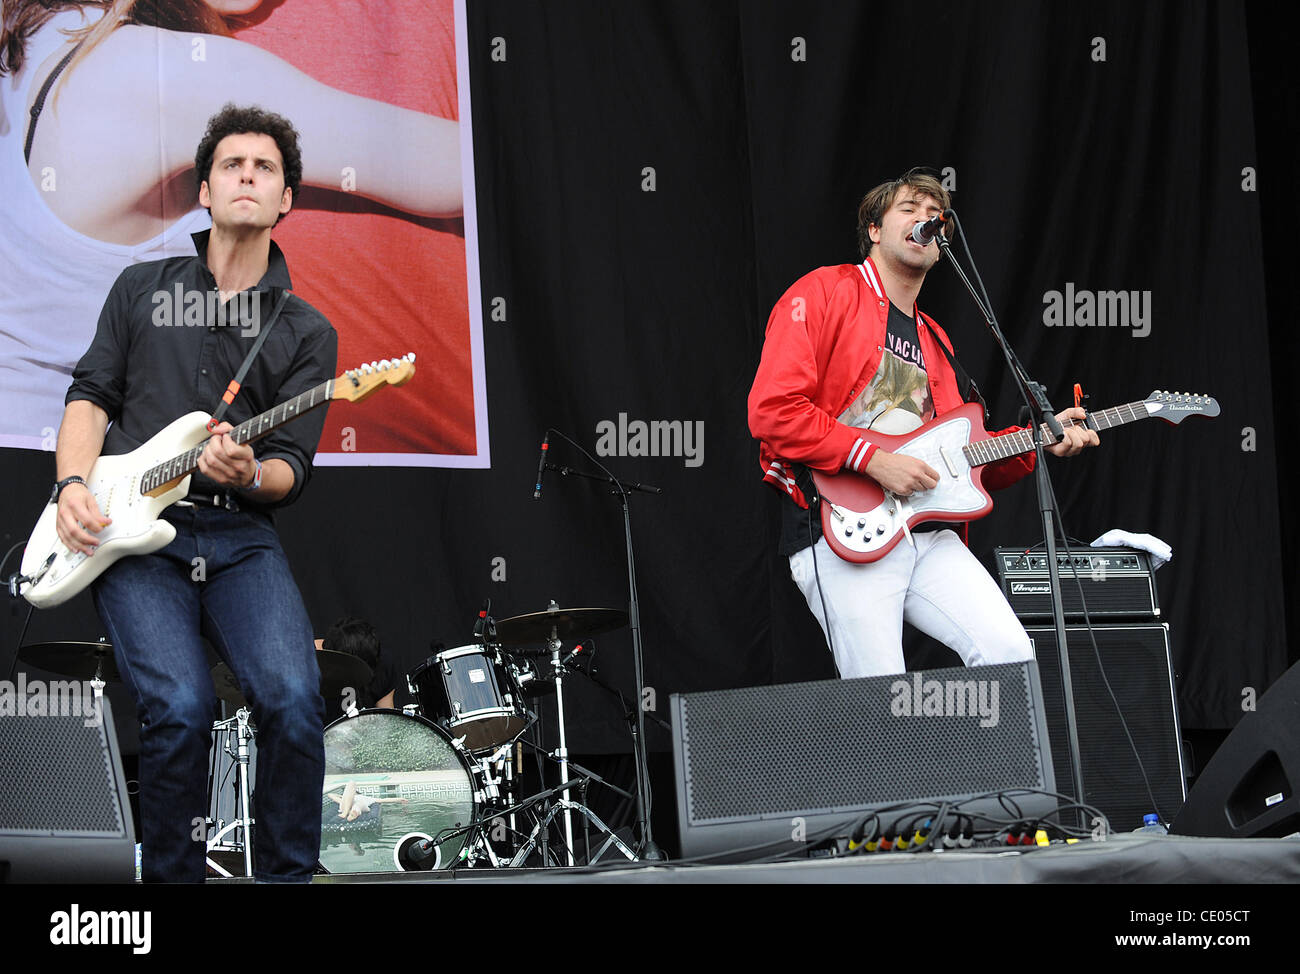 Aug 5, 2011 - Chicago, Illinois; USA - Musician JUSTIN YOUNG and Guitarist FREDDIE COWAN of the band The Vaccines - Stock Image